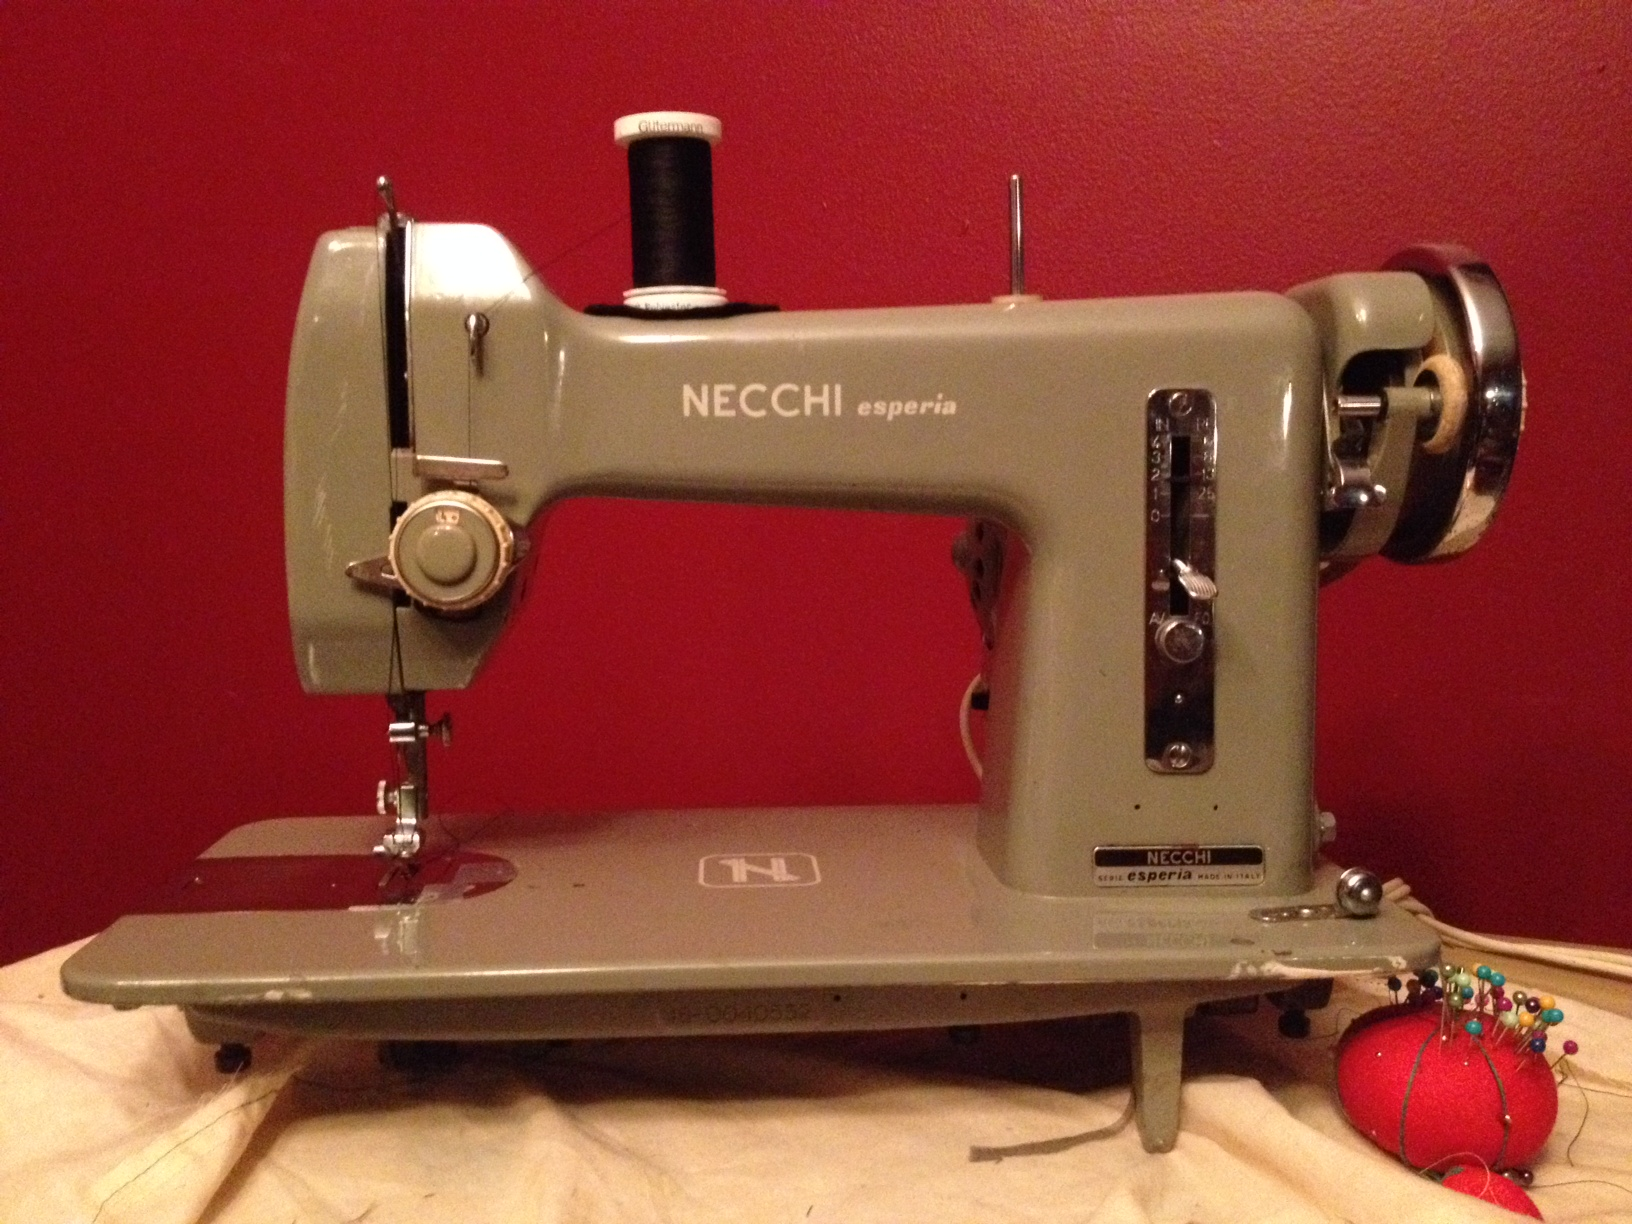 Necchi Esperia A Word Is Elegy To What It Signifies Thread Sewing Machine Diagram Labeled Theres Something I Love About The Simplicity Of Straight Stitch So Much Less Go Haywire In Mechanics And Seems Like Working